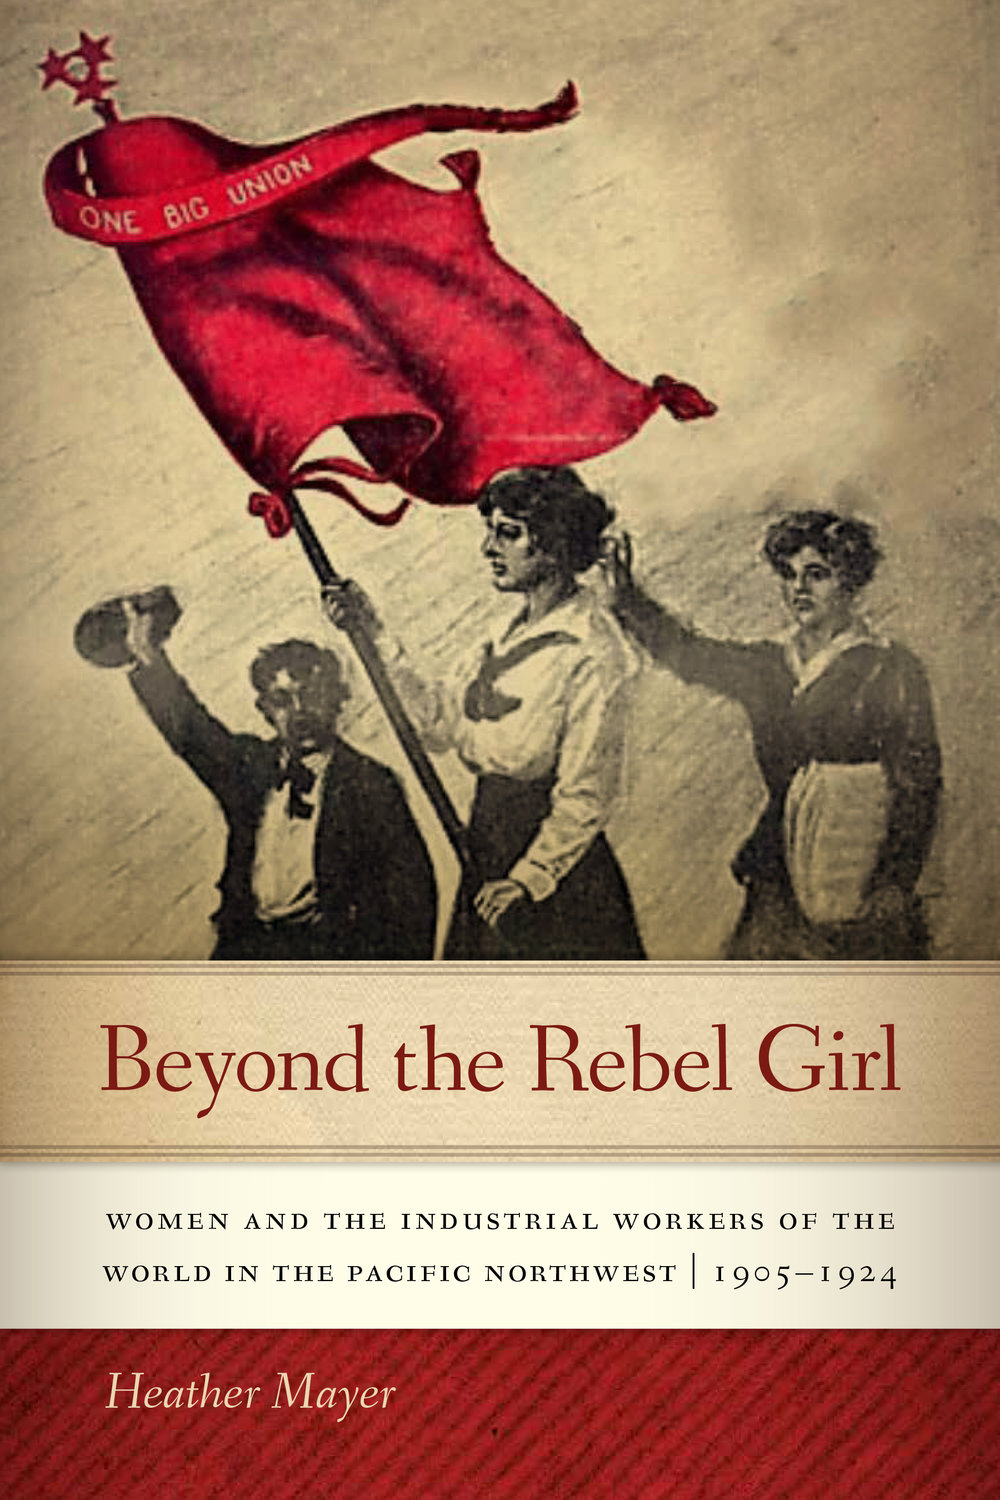 Beyond the Rebel Girl - More than a century after their founding in 1905, the Industrial Workers of the World—or Wobblies as they are commonly known—remain a popular subject for study and discussion among students of labor history and social justice. They are often portrayed as lovable underdogs, with their songs and cartoons, generally irreverent attitude, and stalwart courage in the face of systemic persecution from vigilantes, law enforcement, and government officials.In Beyond the Rebel Girl,historian Heather Mayer questions the well-worn vision of Wobblies as young, single, male, itinerant workers. While such workers formed a large portion of the membership, they weren't the whole picture. In small towns across the Northwest, and in the larger cities of Seattle, Portland, and Spokane, women played an integral role in Wobbly life. Single women, but also families—husband and wife Wobbly teams—played important roles in some of the biggest fights for justice. IWW halls in these Northwest cities often functioned as community centers, with family-friendly events and entertainment.Women were drawn to the IWW for its radical vision, inclusionary policies, birth control advocacy, and emphasis on freedom of choice in marriage. The IWW also offered women an avenue for activism that wasn't focused primarily on the fight for suffrage.Beyond the Rebel Girldeepens our understanding of how the IWW functioned and how the union supported women in their fight for birth control, sexual emancipation, and better labor conditions, all while facing persecution at the local, state, and federal levels.Buy now from Oregon State University Press, Amazon, Broadway Books, or Powell's.